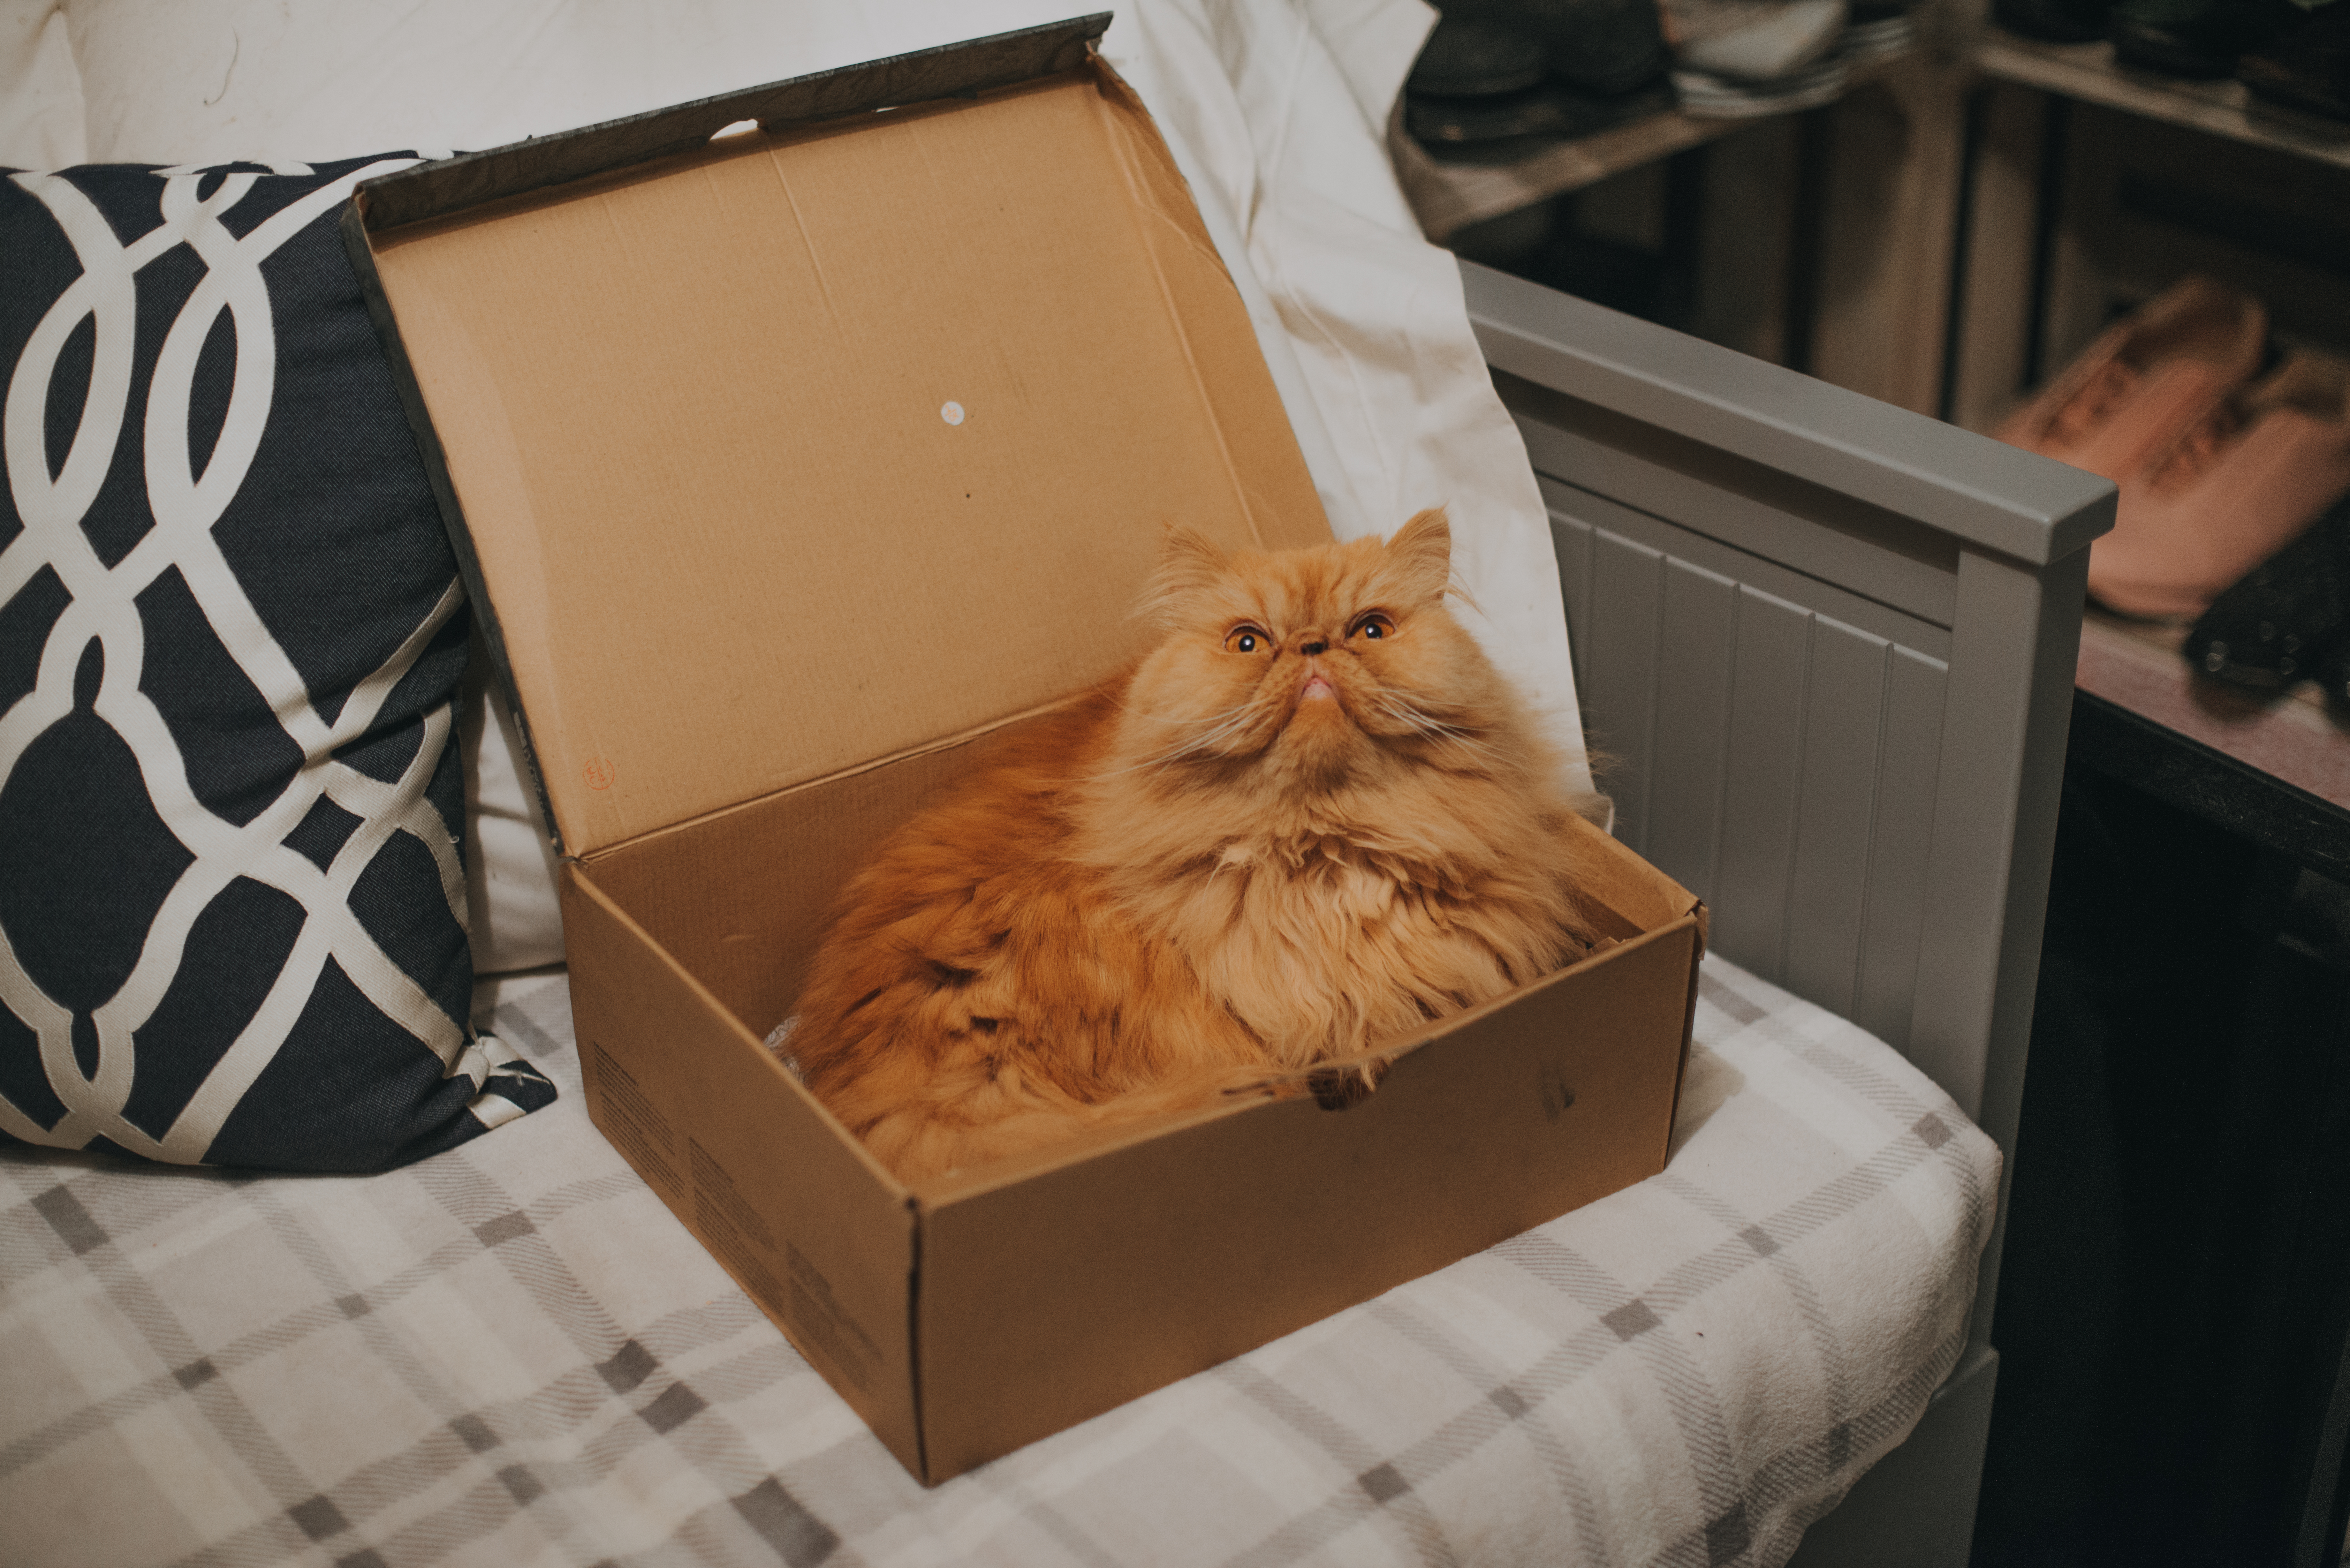 Orange cat sitting in cardboard box.